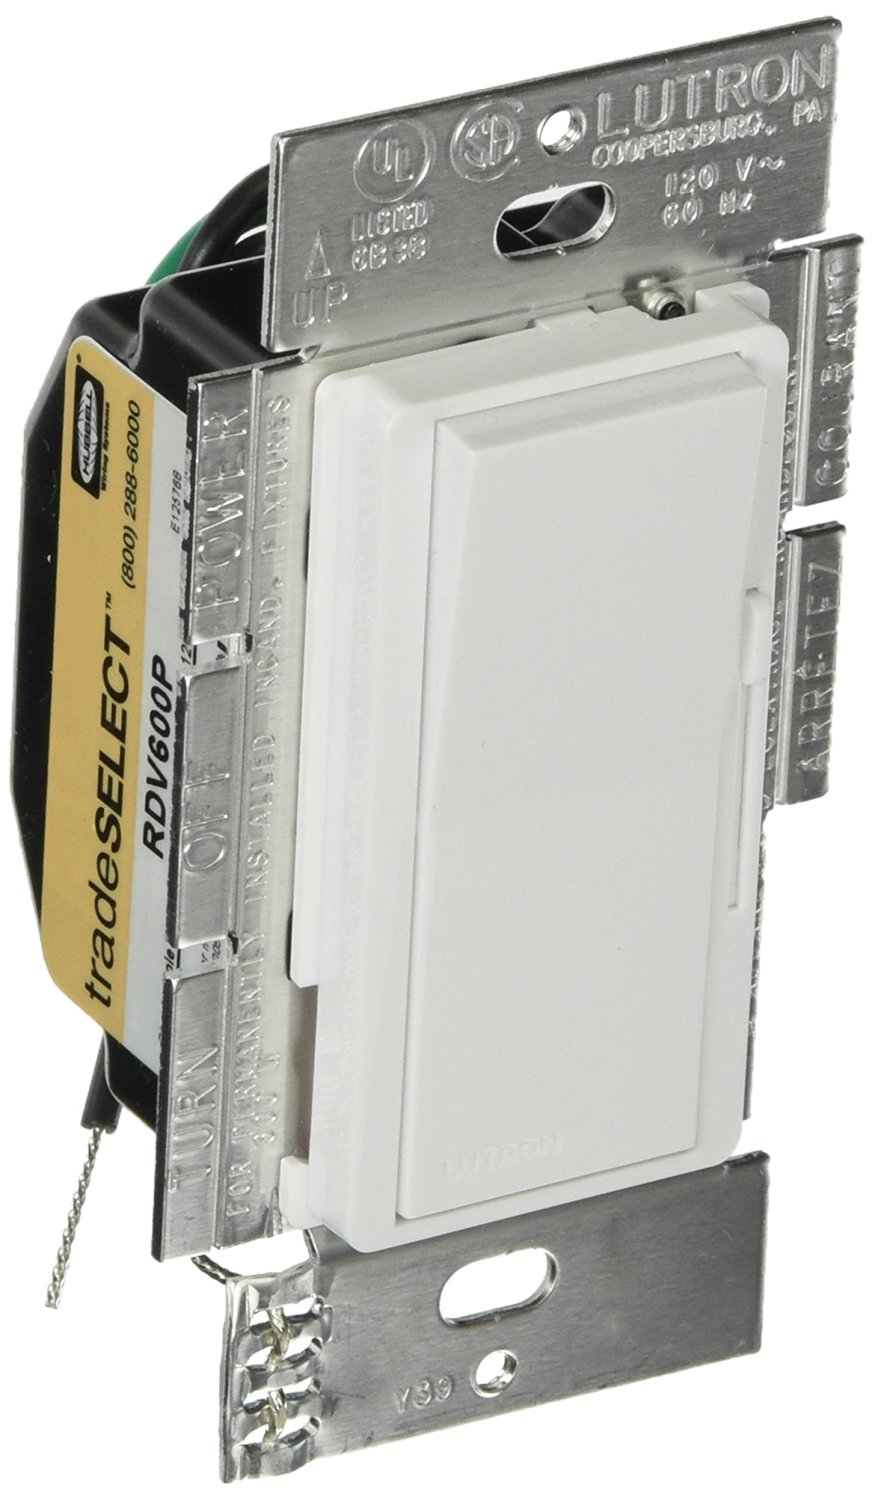 Buy Hubbell Wiring Systems Mr223sp Standard Rocker Switch Double 15 Amp Single Pole 2 Toggle Switches With Back And Side White Rdv600pw Tradeselect Decorator Dimmers Preset Lighting Control Night Light 600w Power 120v Ac